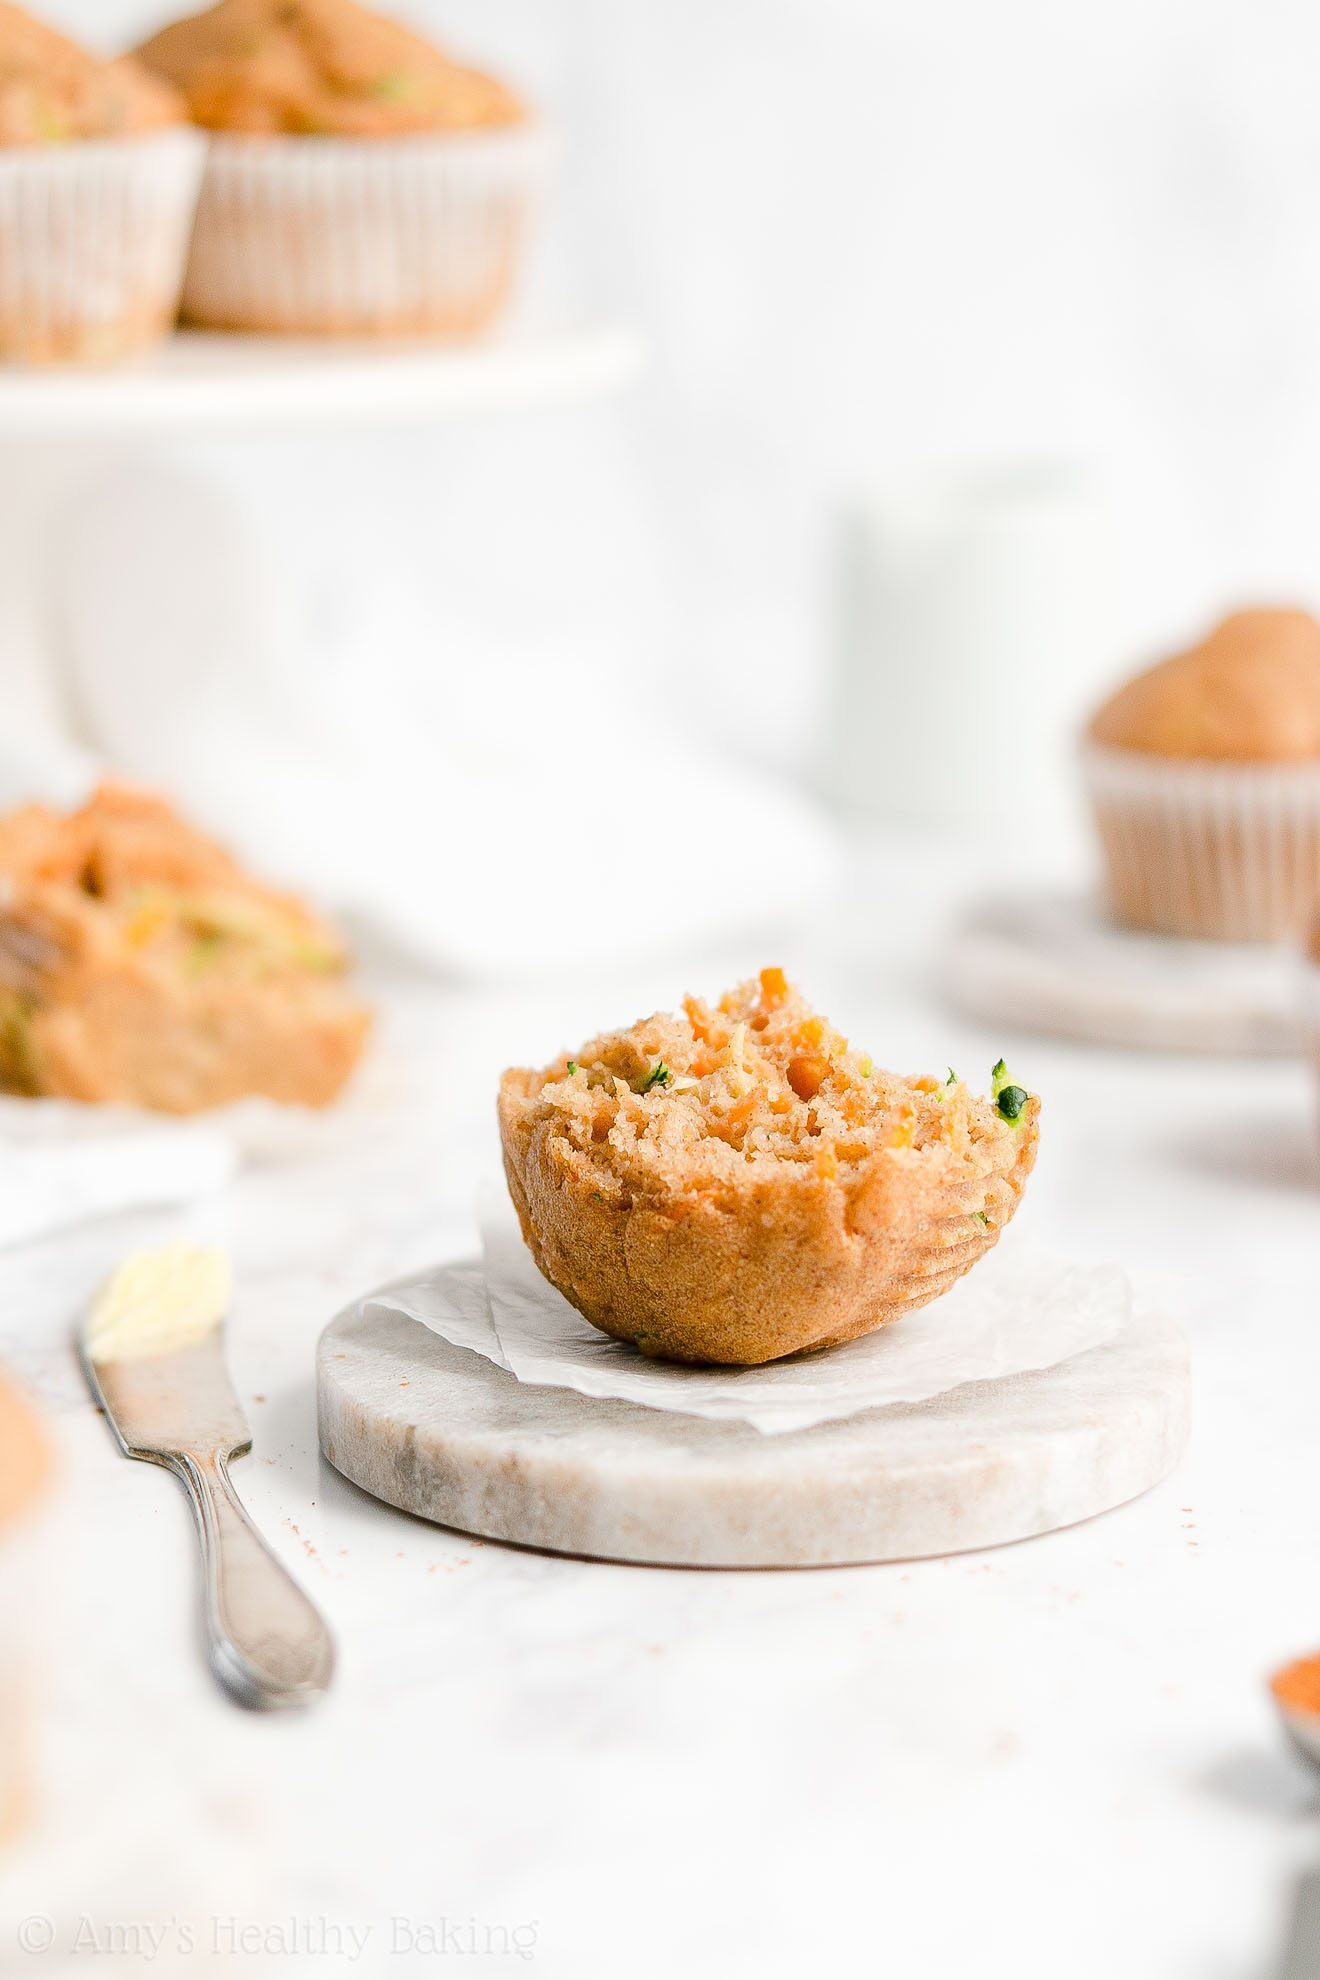 Easy Healthy Gluten Free Sugar Free Moist Spiced Carrot Zucchini Muffins